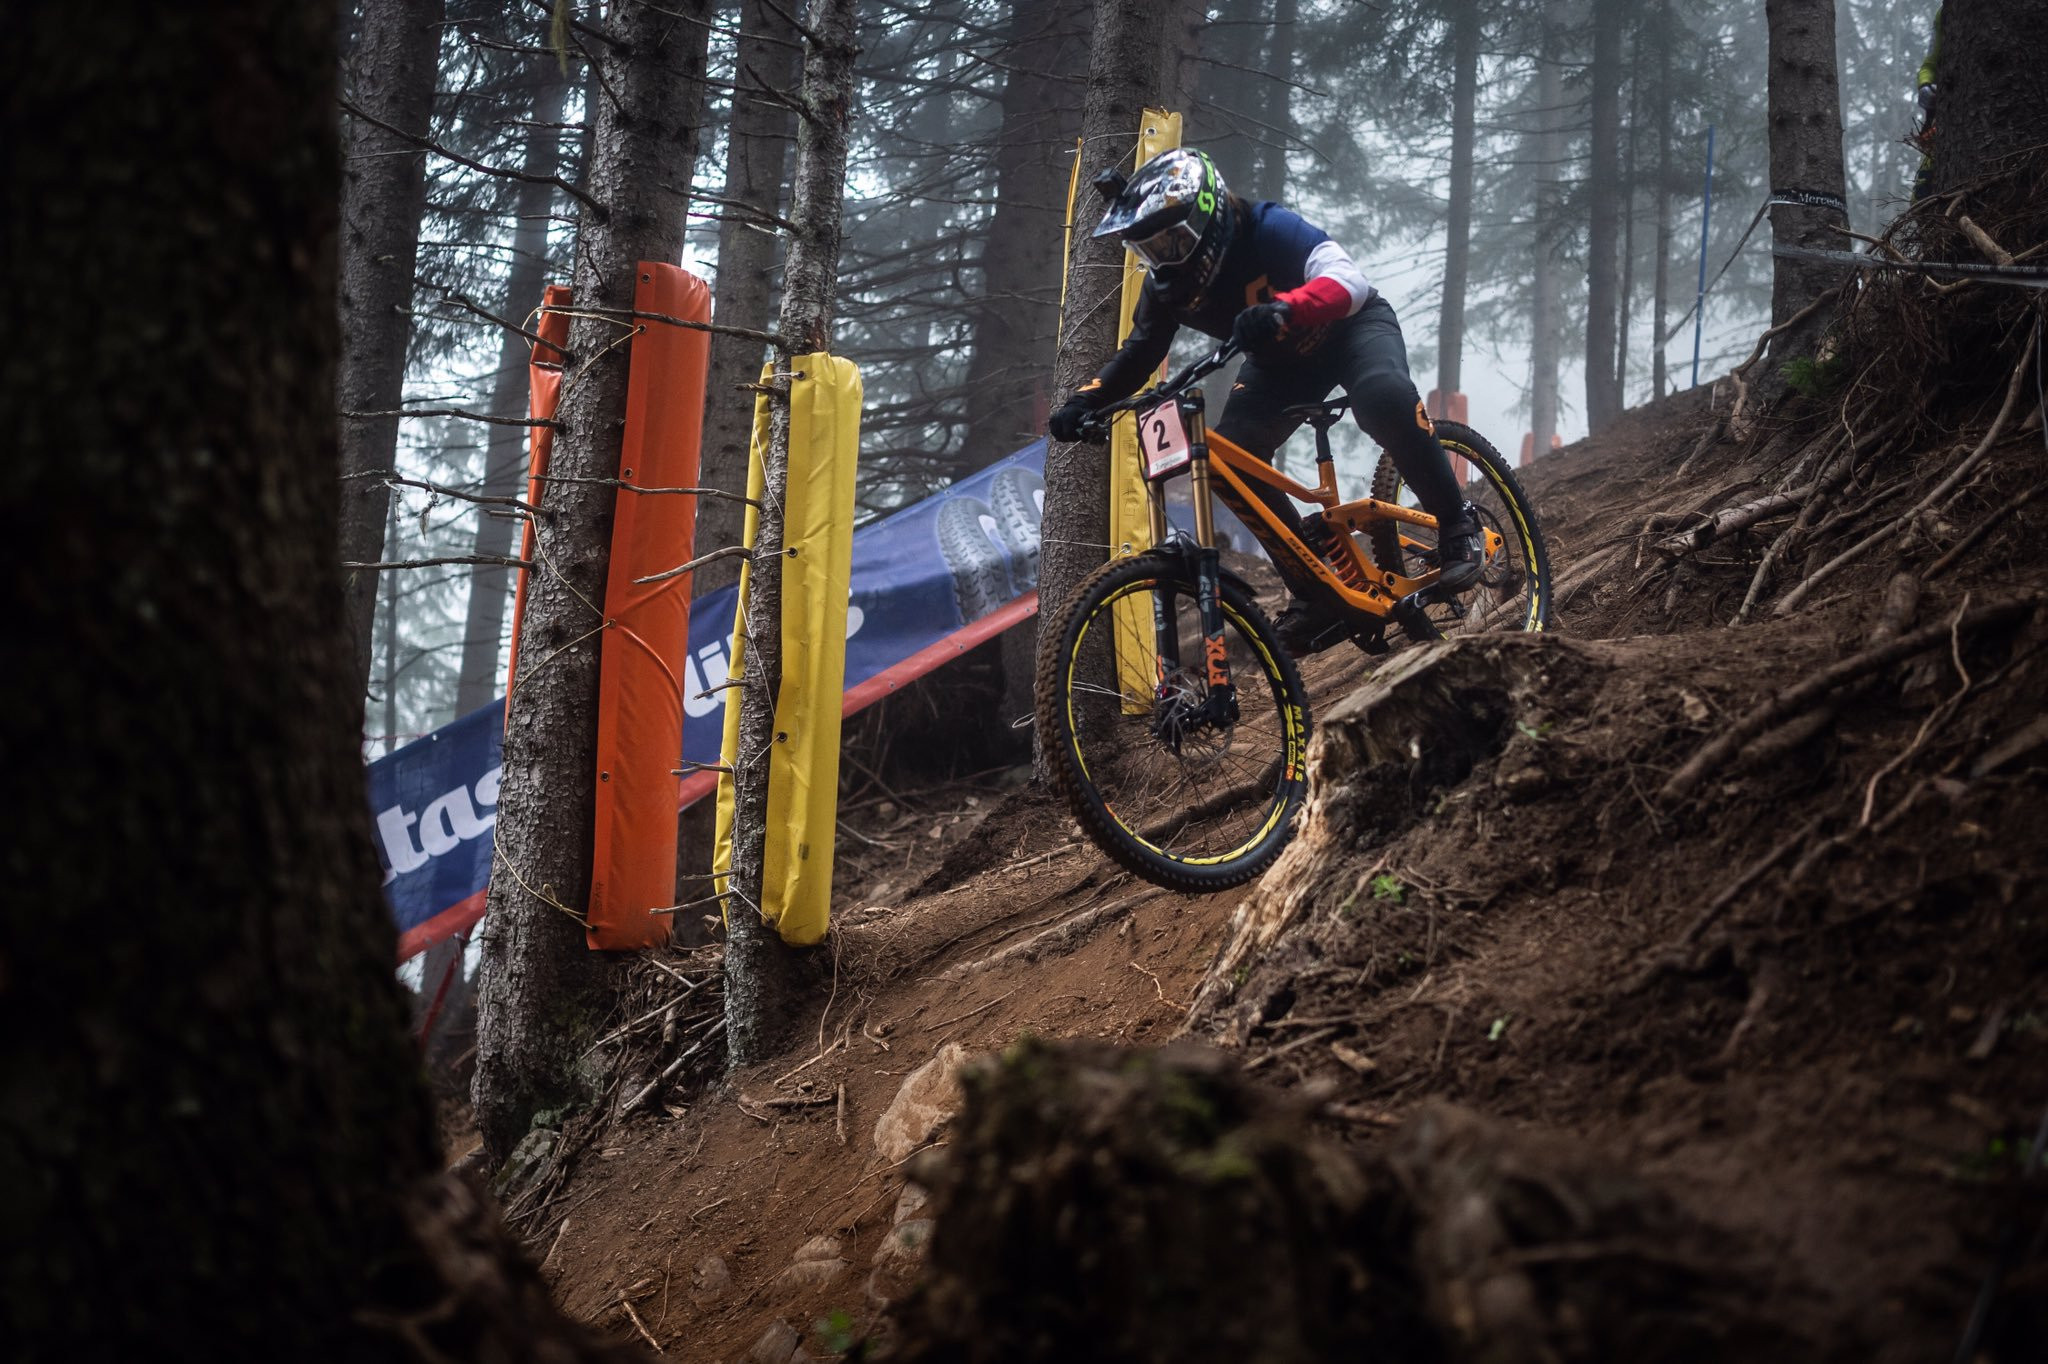 France's Marine Cabirou secured a second successive win in the women's downhill series ©UCI